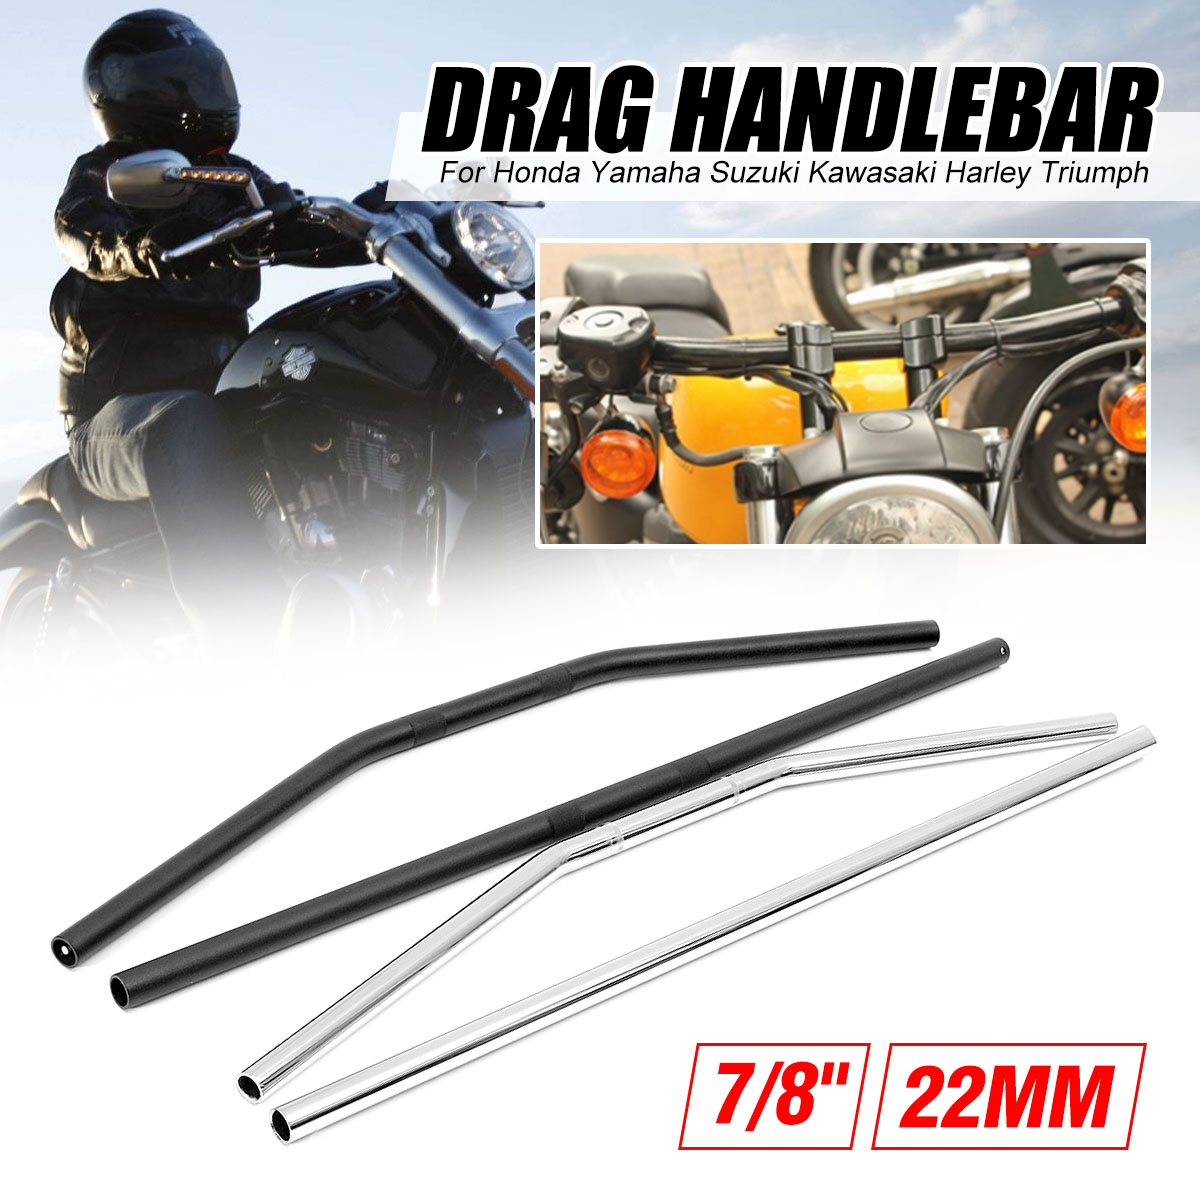 1pc New Motorcycle Handlebar 22mm 7/8inch Motorbikes handlebar Drag Straight / Curve Bar For Honda/Yamaha/Suzuki/Kawasaki/Harley1pc New Motorcycle Handlebar 22mm 7/8inch Motorbikes handlebar Drag Straight / Curve Bar For Honda/Yamaha/Suzuki/Kawasaki/Harley